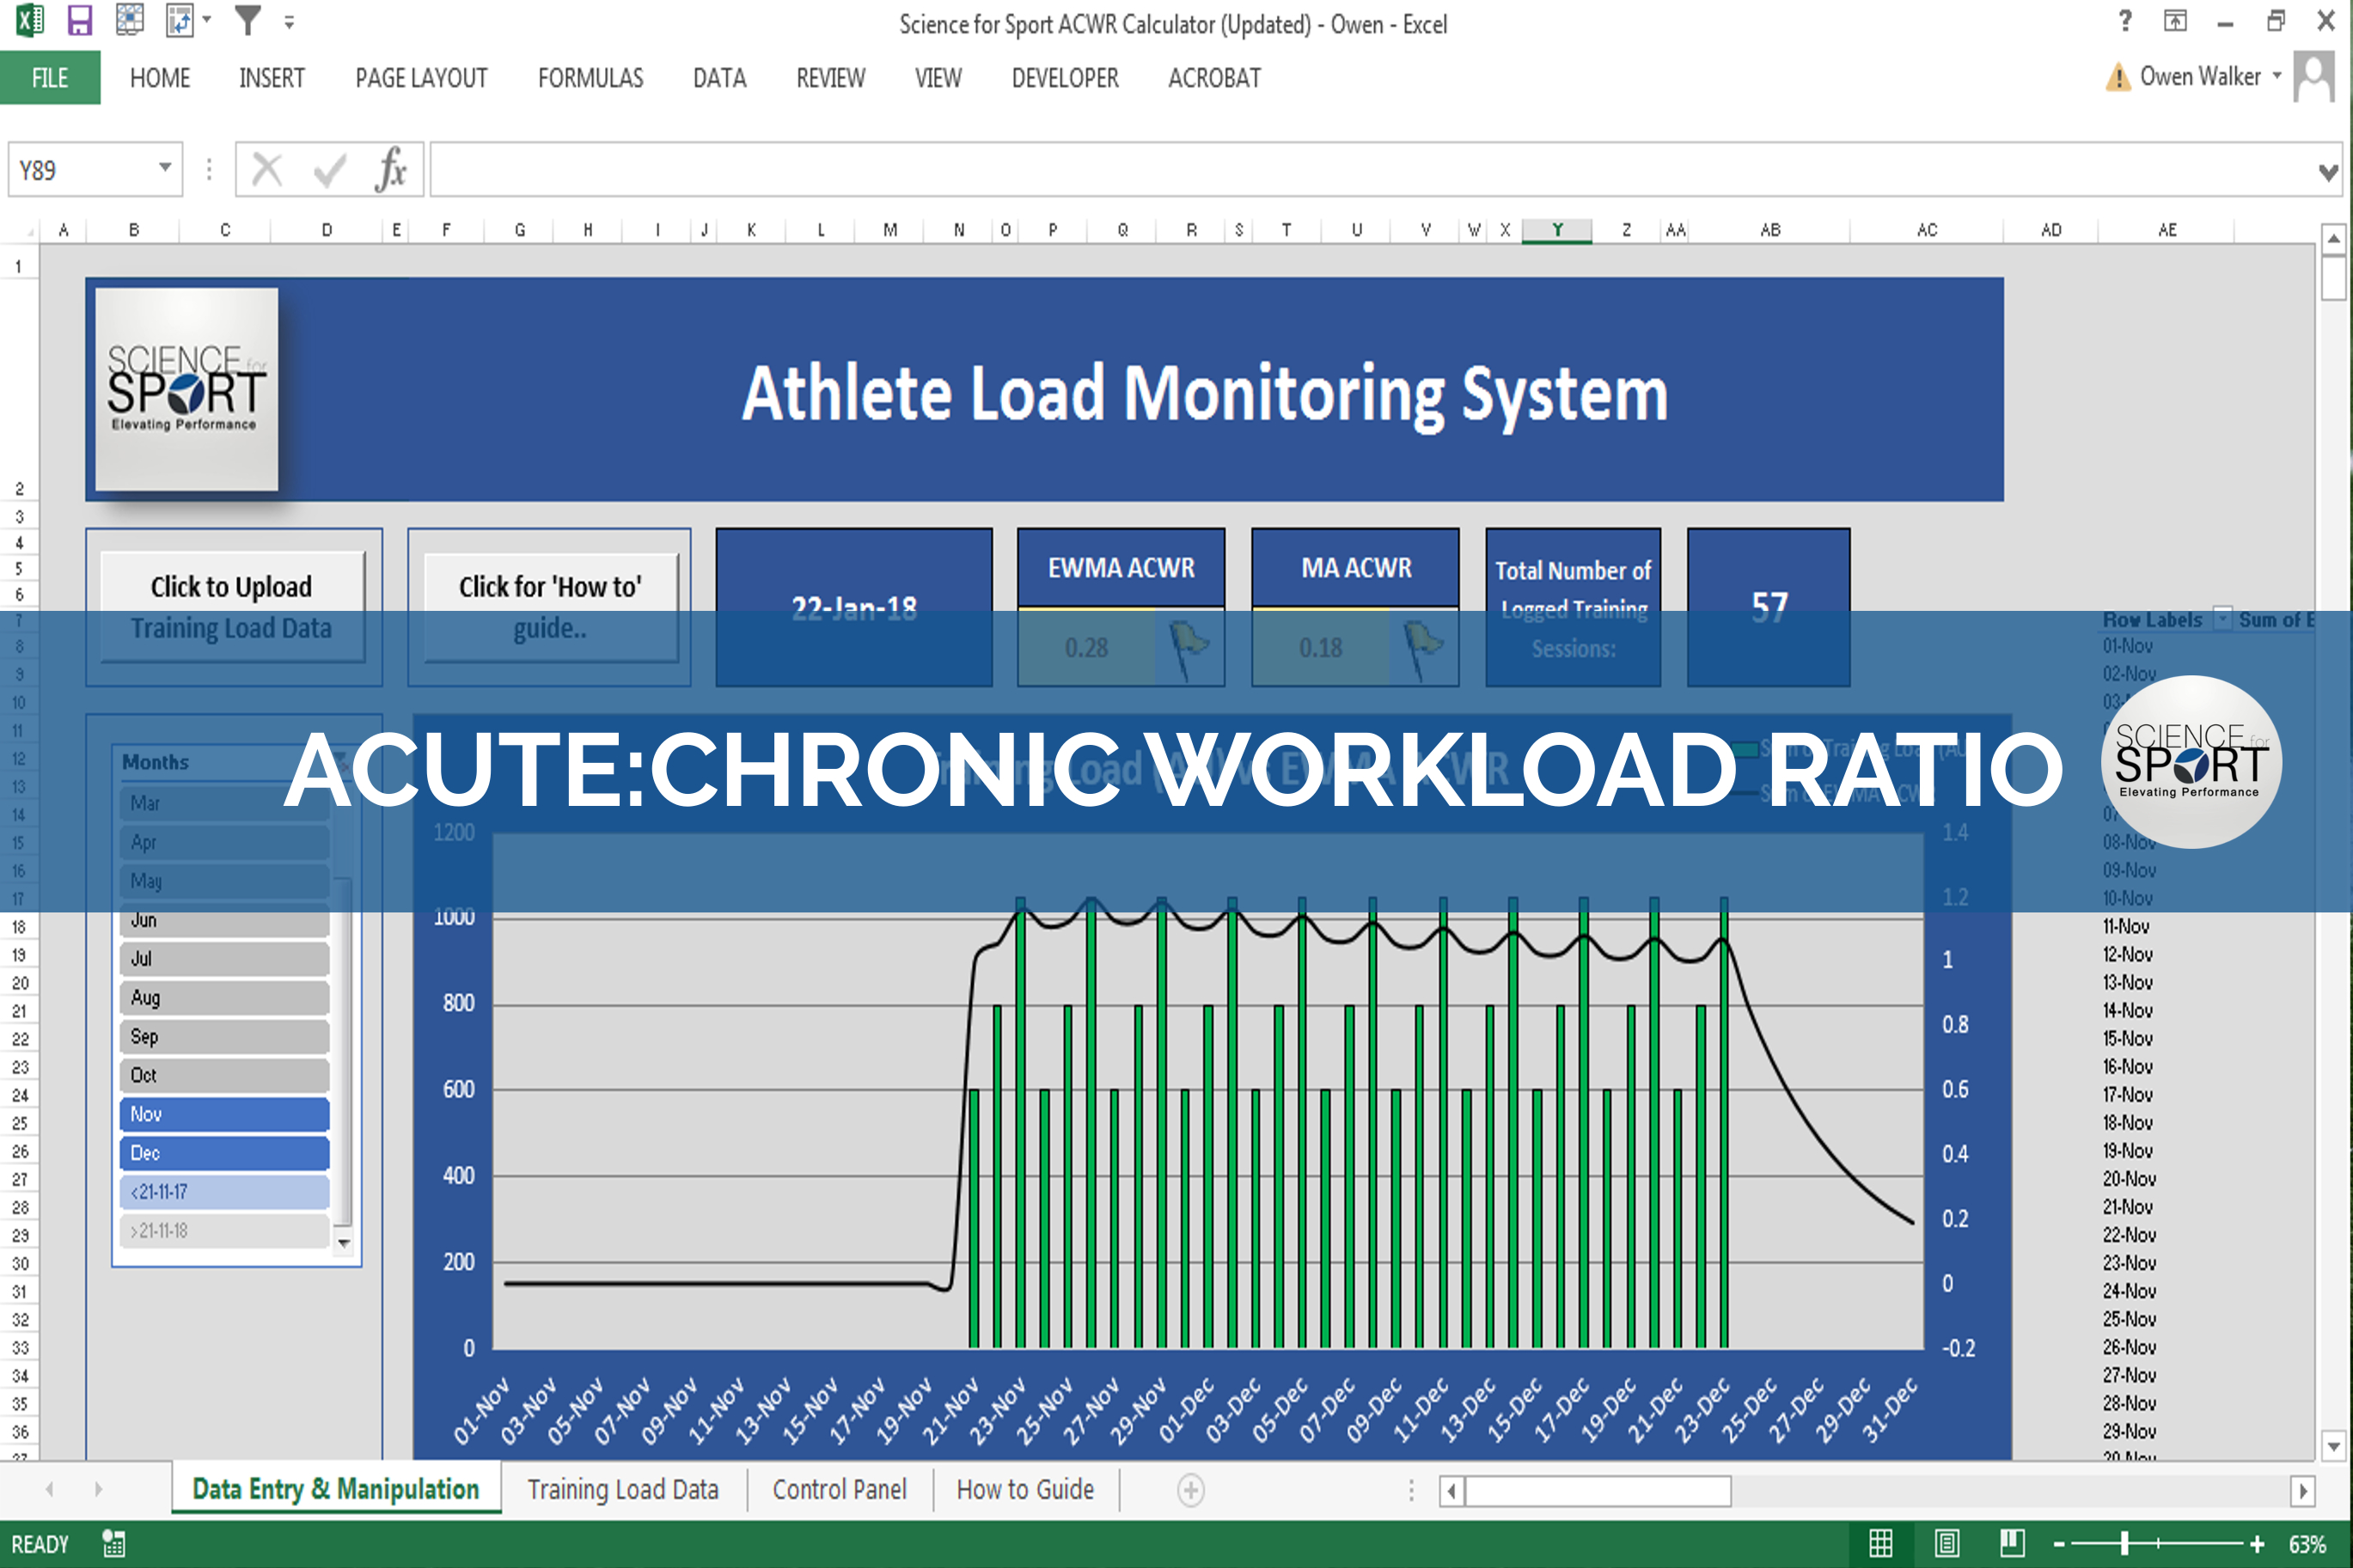 acute chronic workload ratio science for sport